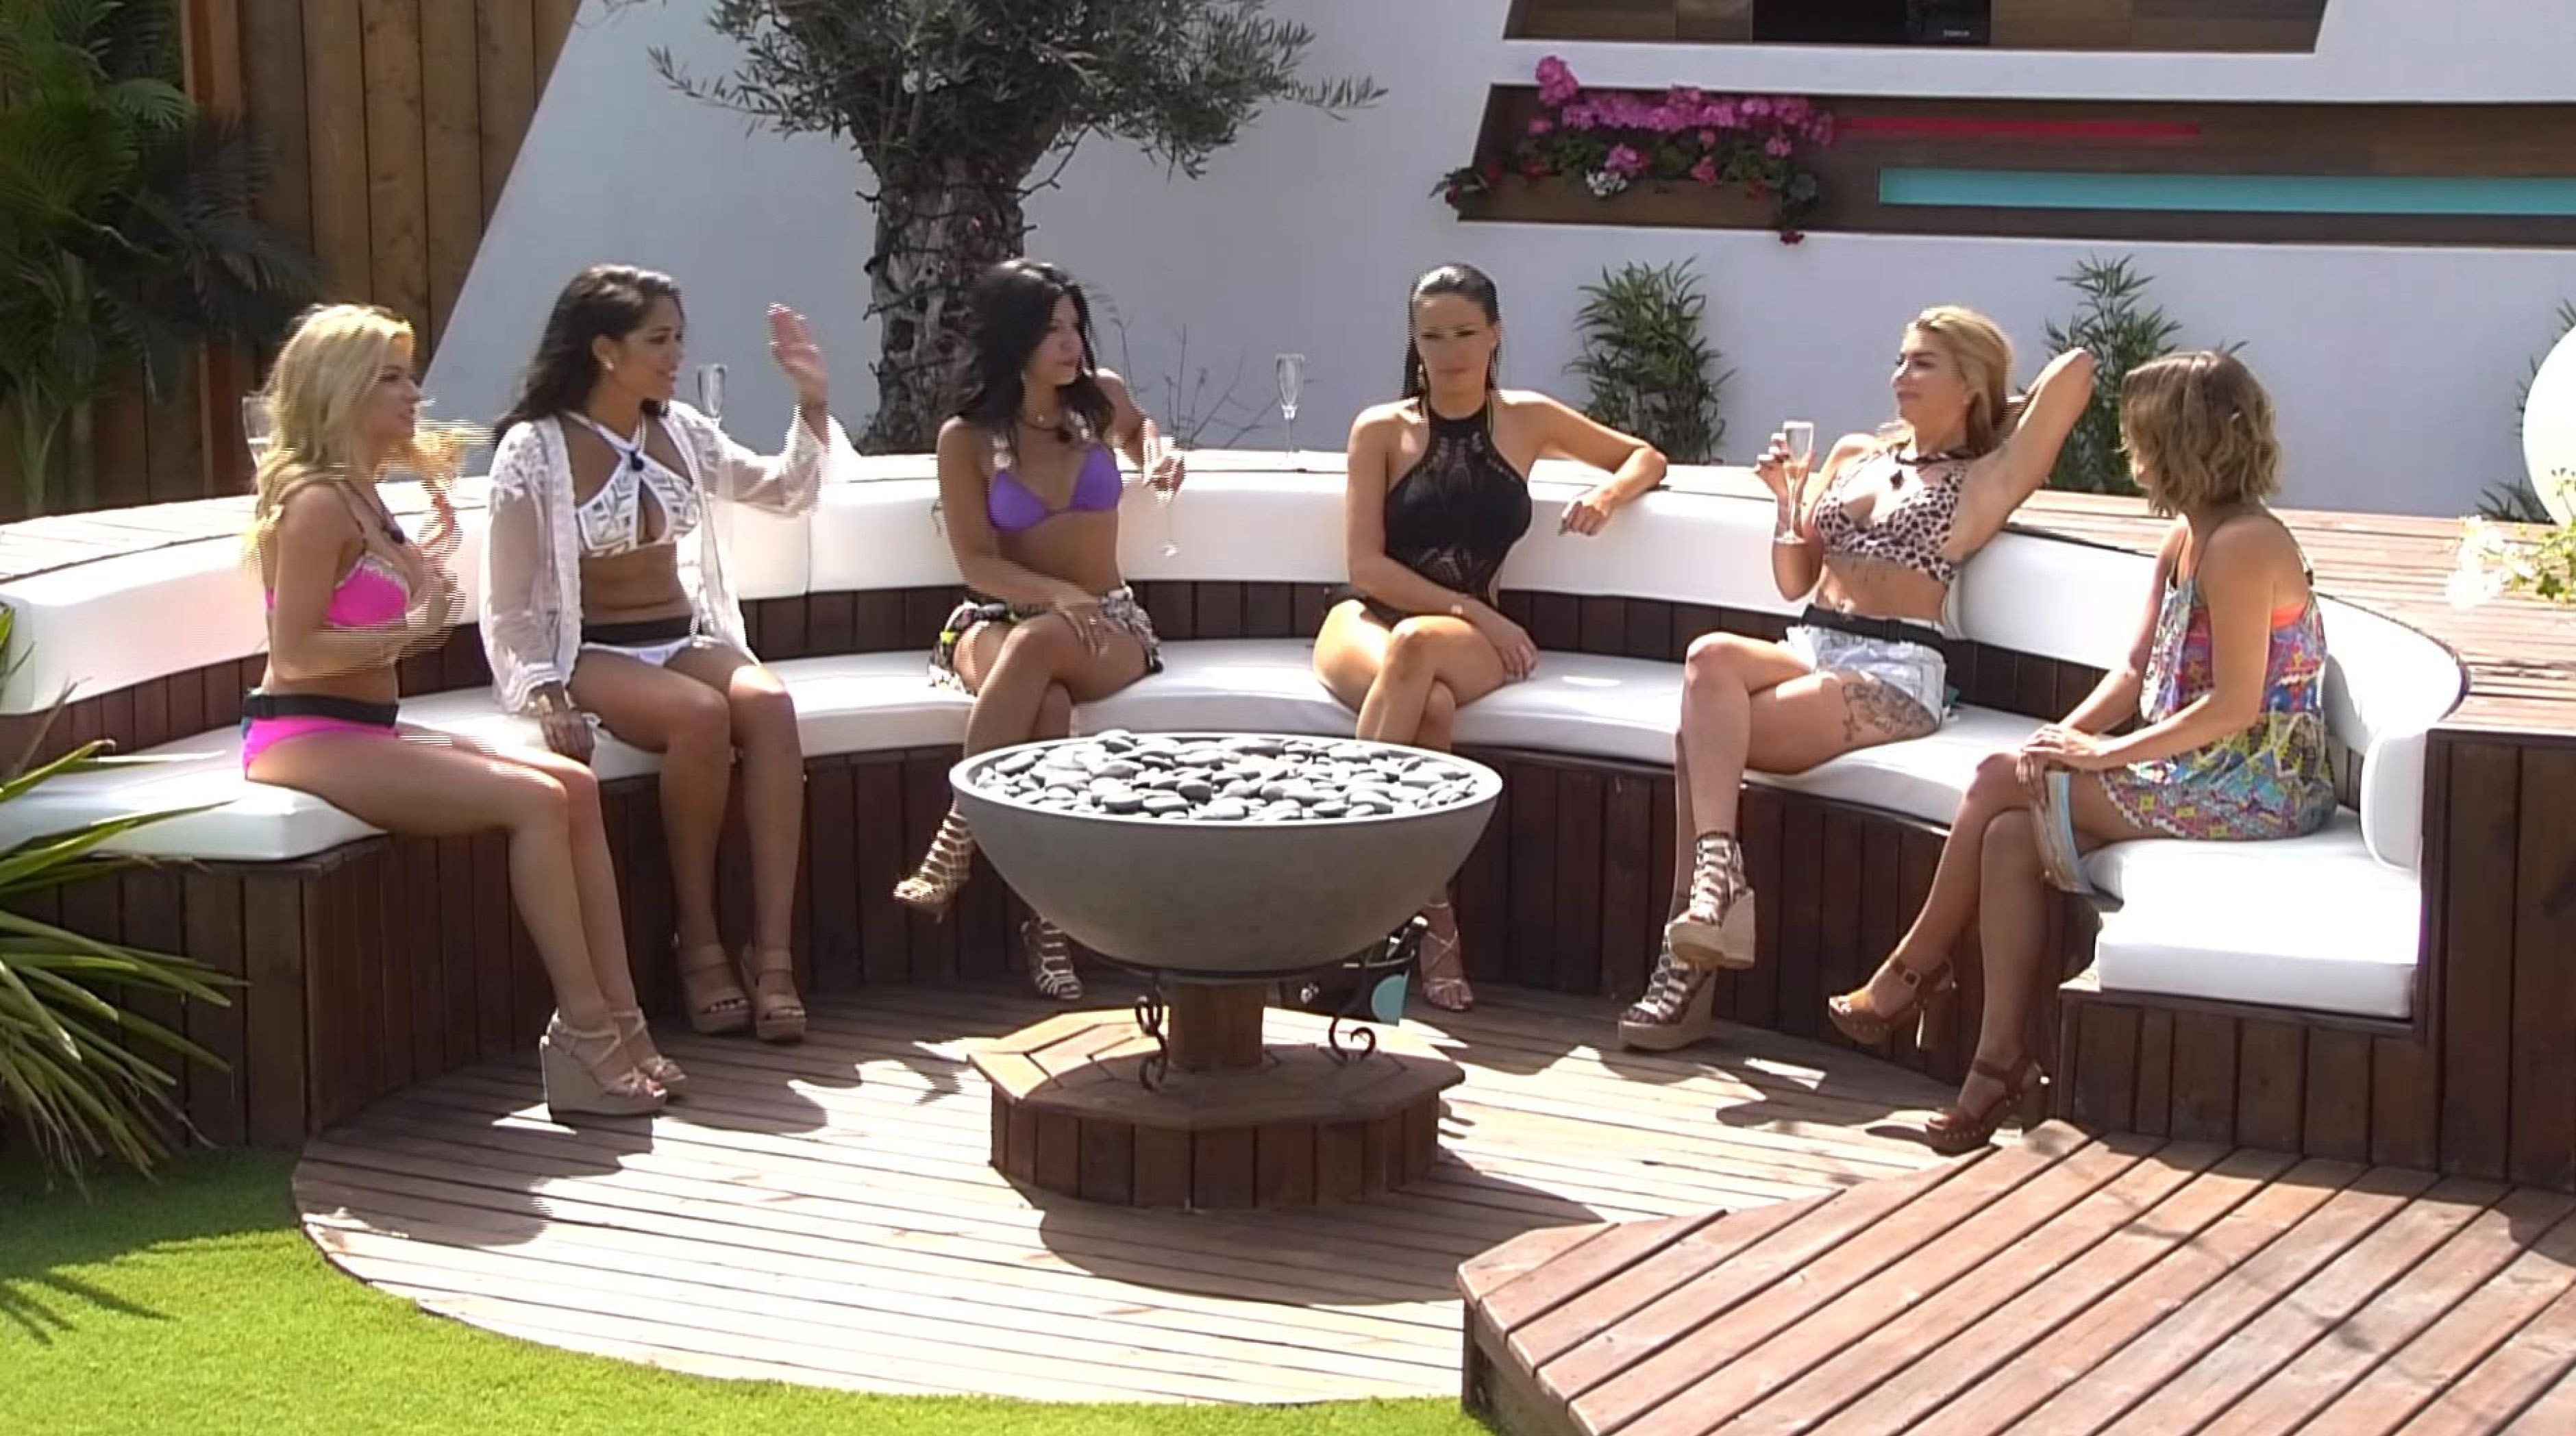 435bf09dea It's fair to say that our Love Island addiction has been building and  building with each year that has passed, and our fascination with the  second series ...